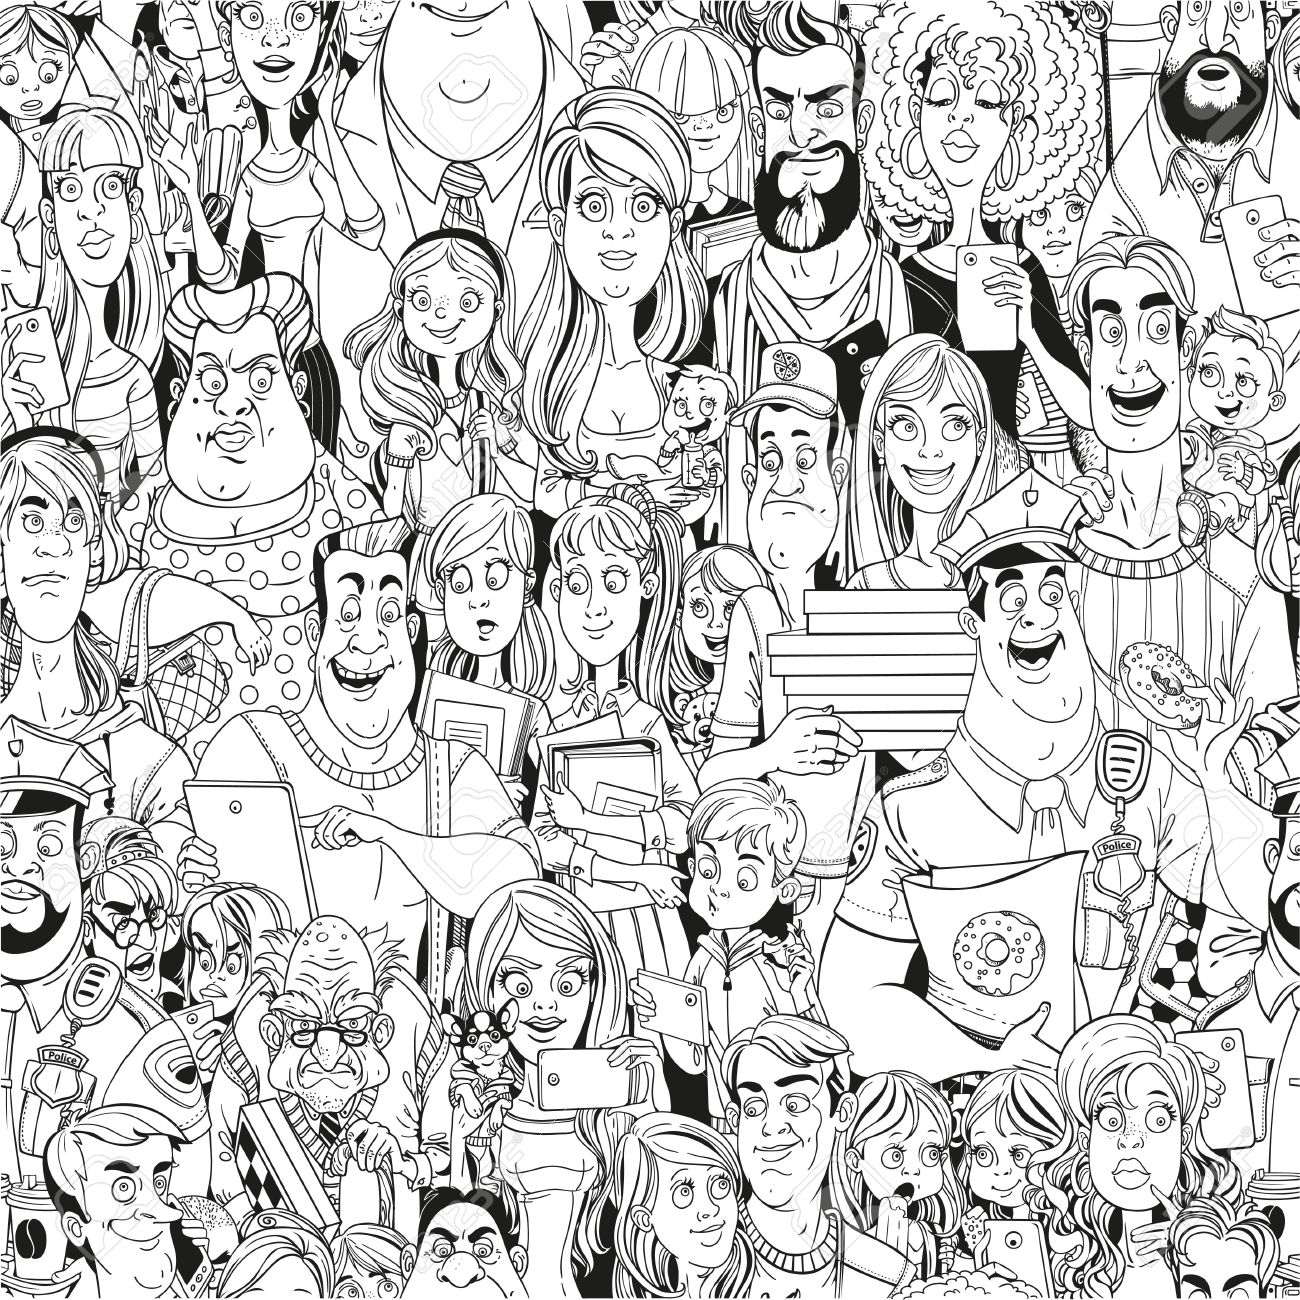 1300x1300 Seamless Pattern From Crowd Of People With Electronic Gadgets